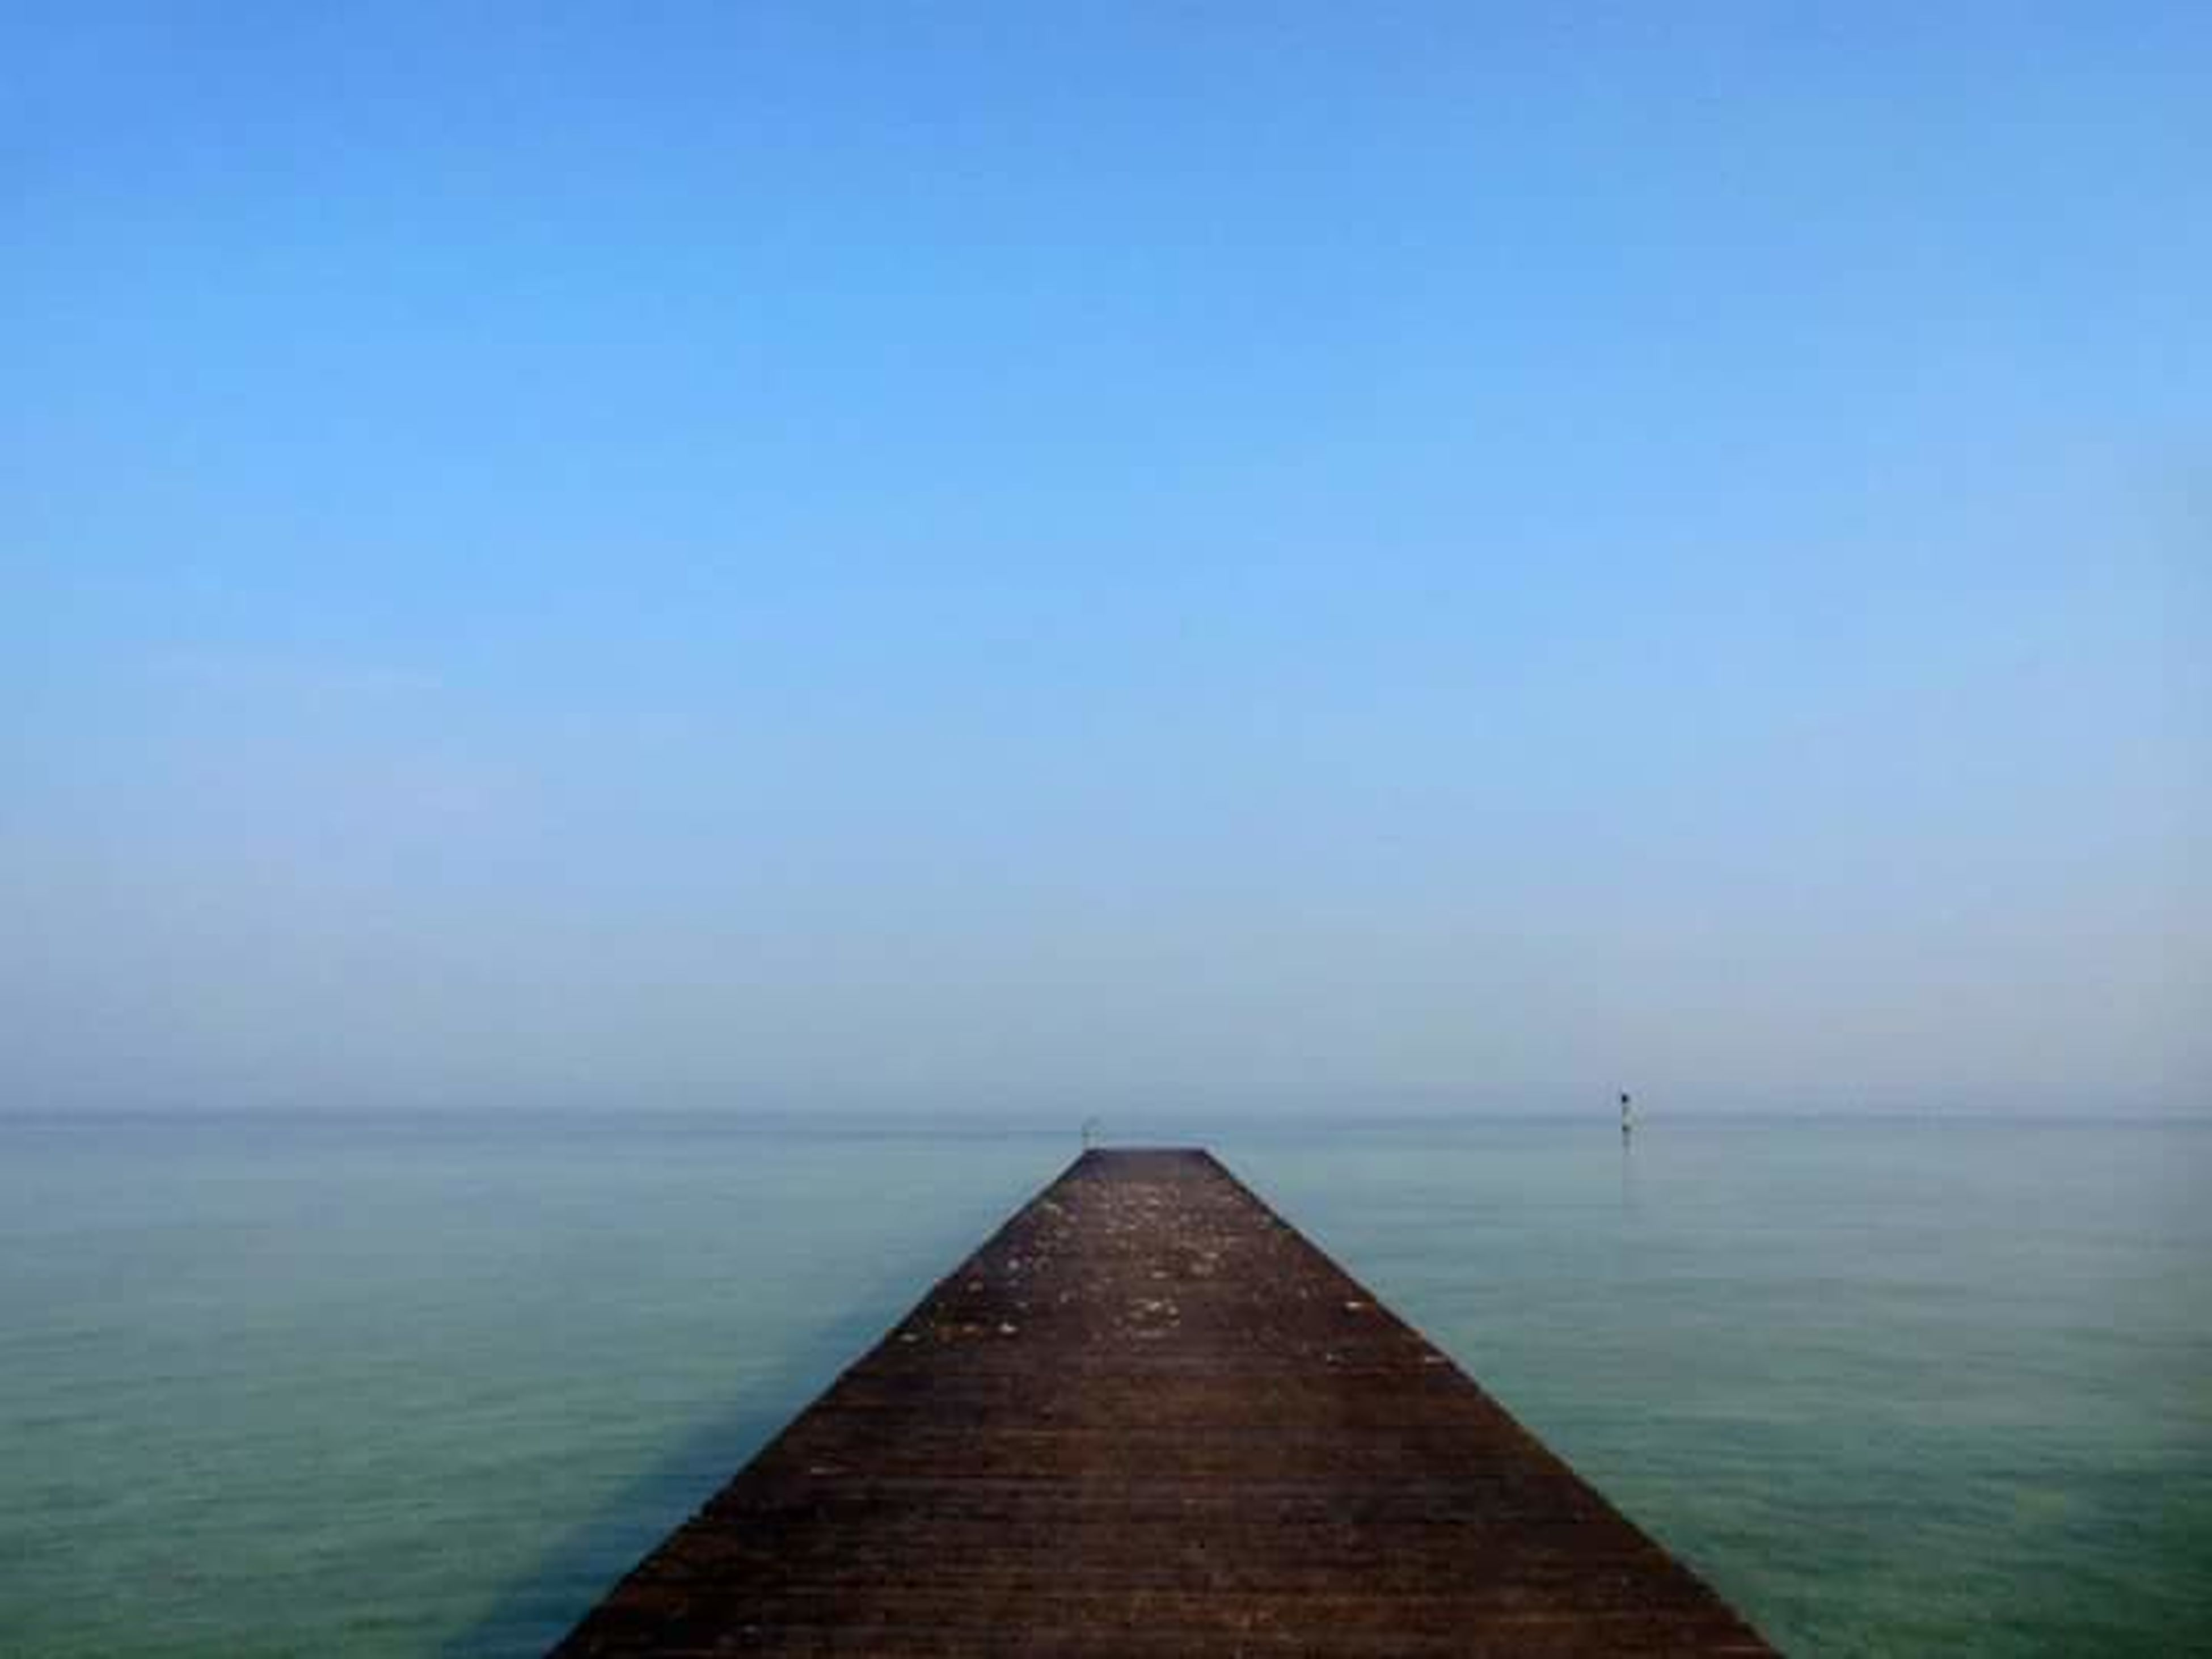 sea, horizon over water, copy space, water, clear sky, tranquil scene, tranquility, scenics, beauty in nature, blue, nature, pier, idyllic, waterfront, seascape, calm, sky, the way forward, ocean, jetty